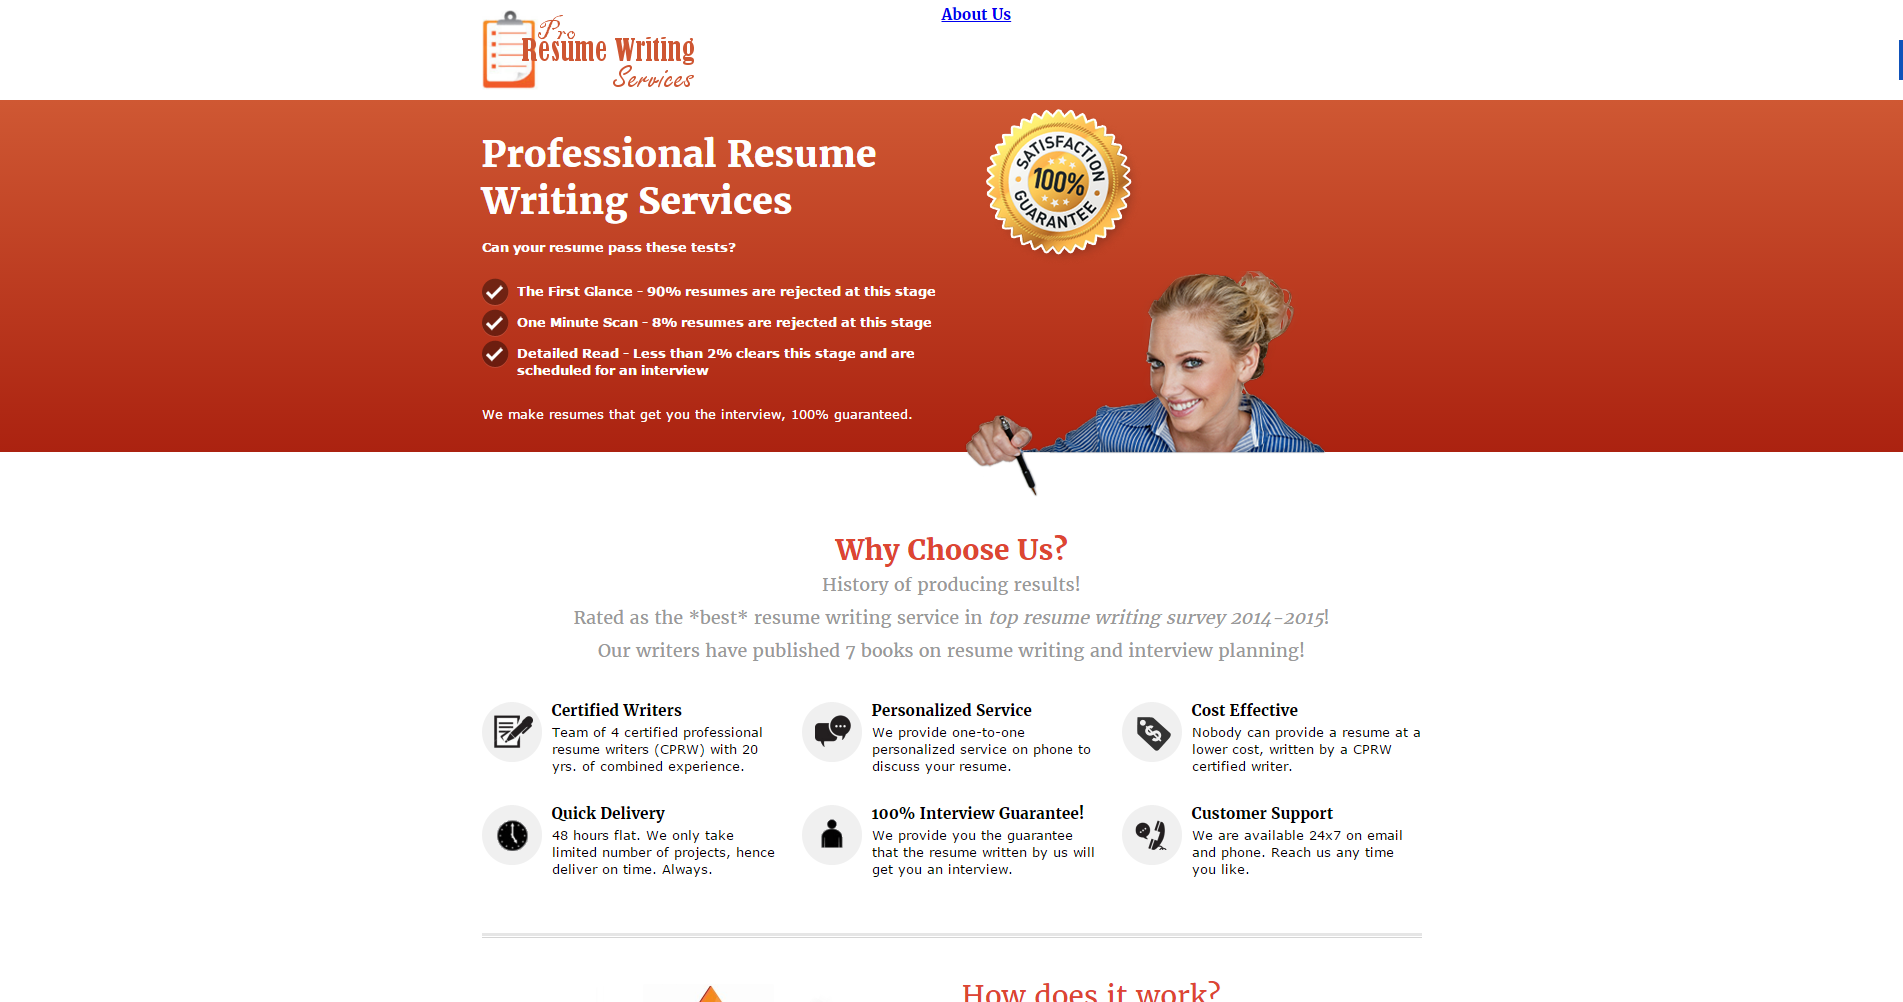 Best resume writing services in philadelphia 2014